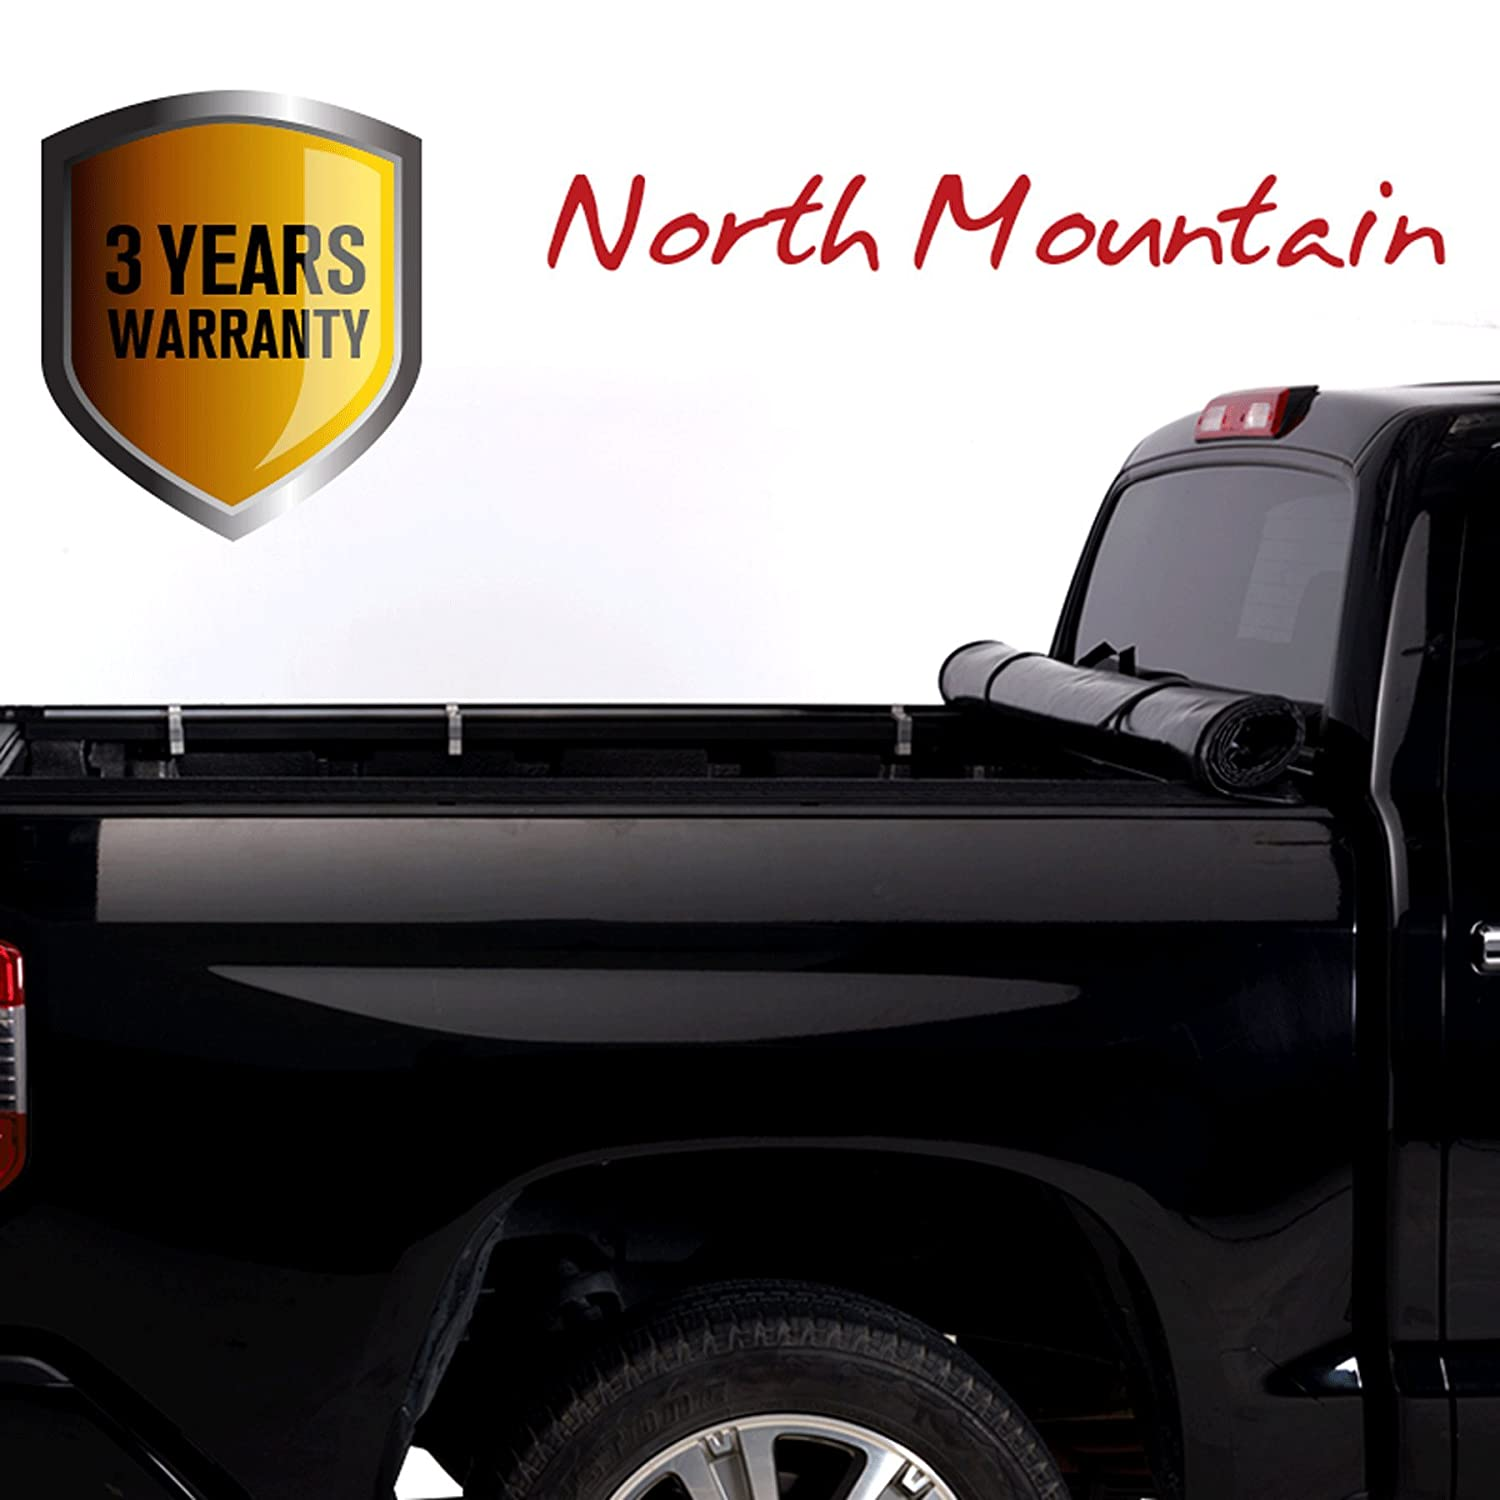 Clamp On No Drill Top Mount Assembly w//Rails+Mounting Hardware Fit 88-00 Chevy//GMC C10 C//K 1500//2500//3500 Pickup 6.5ft Fleetside Bed North Mountain Soft Vinyl Roll-up Tonneau Cover